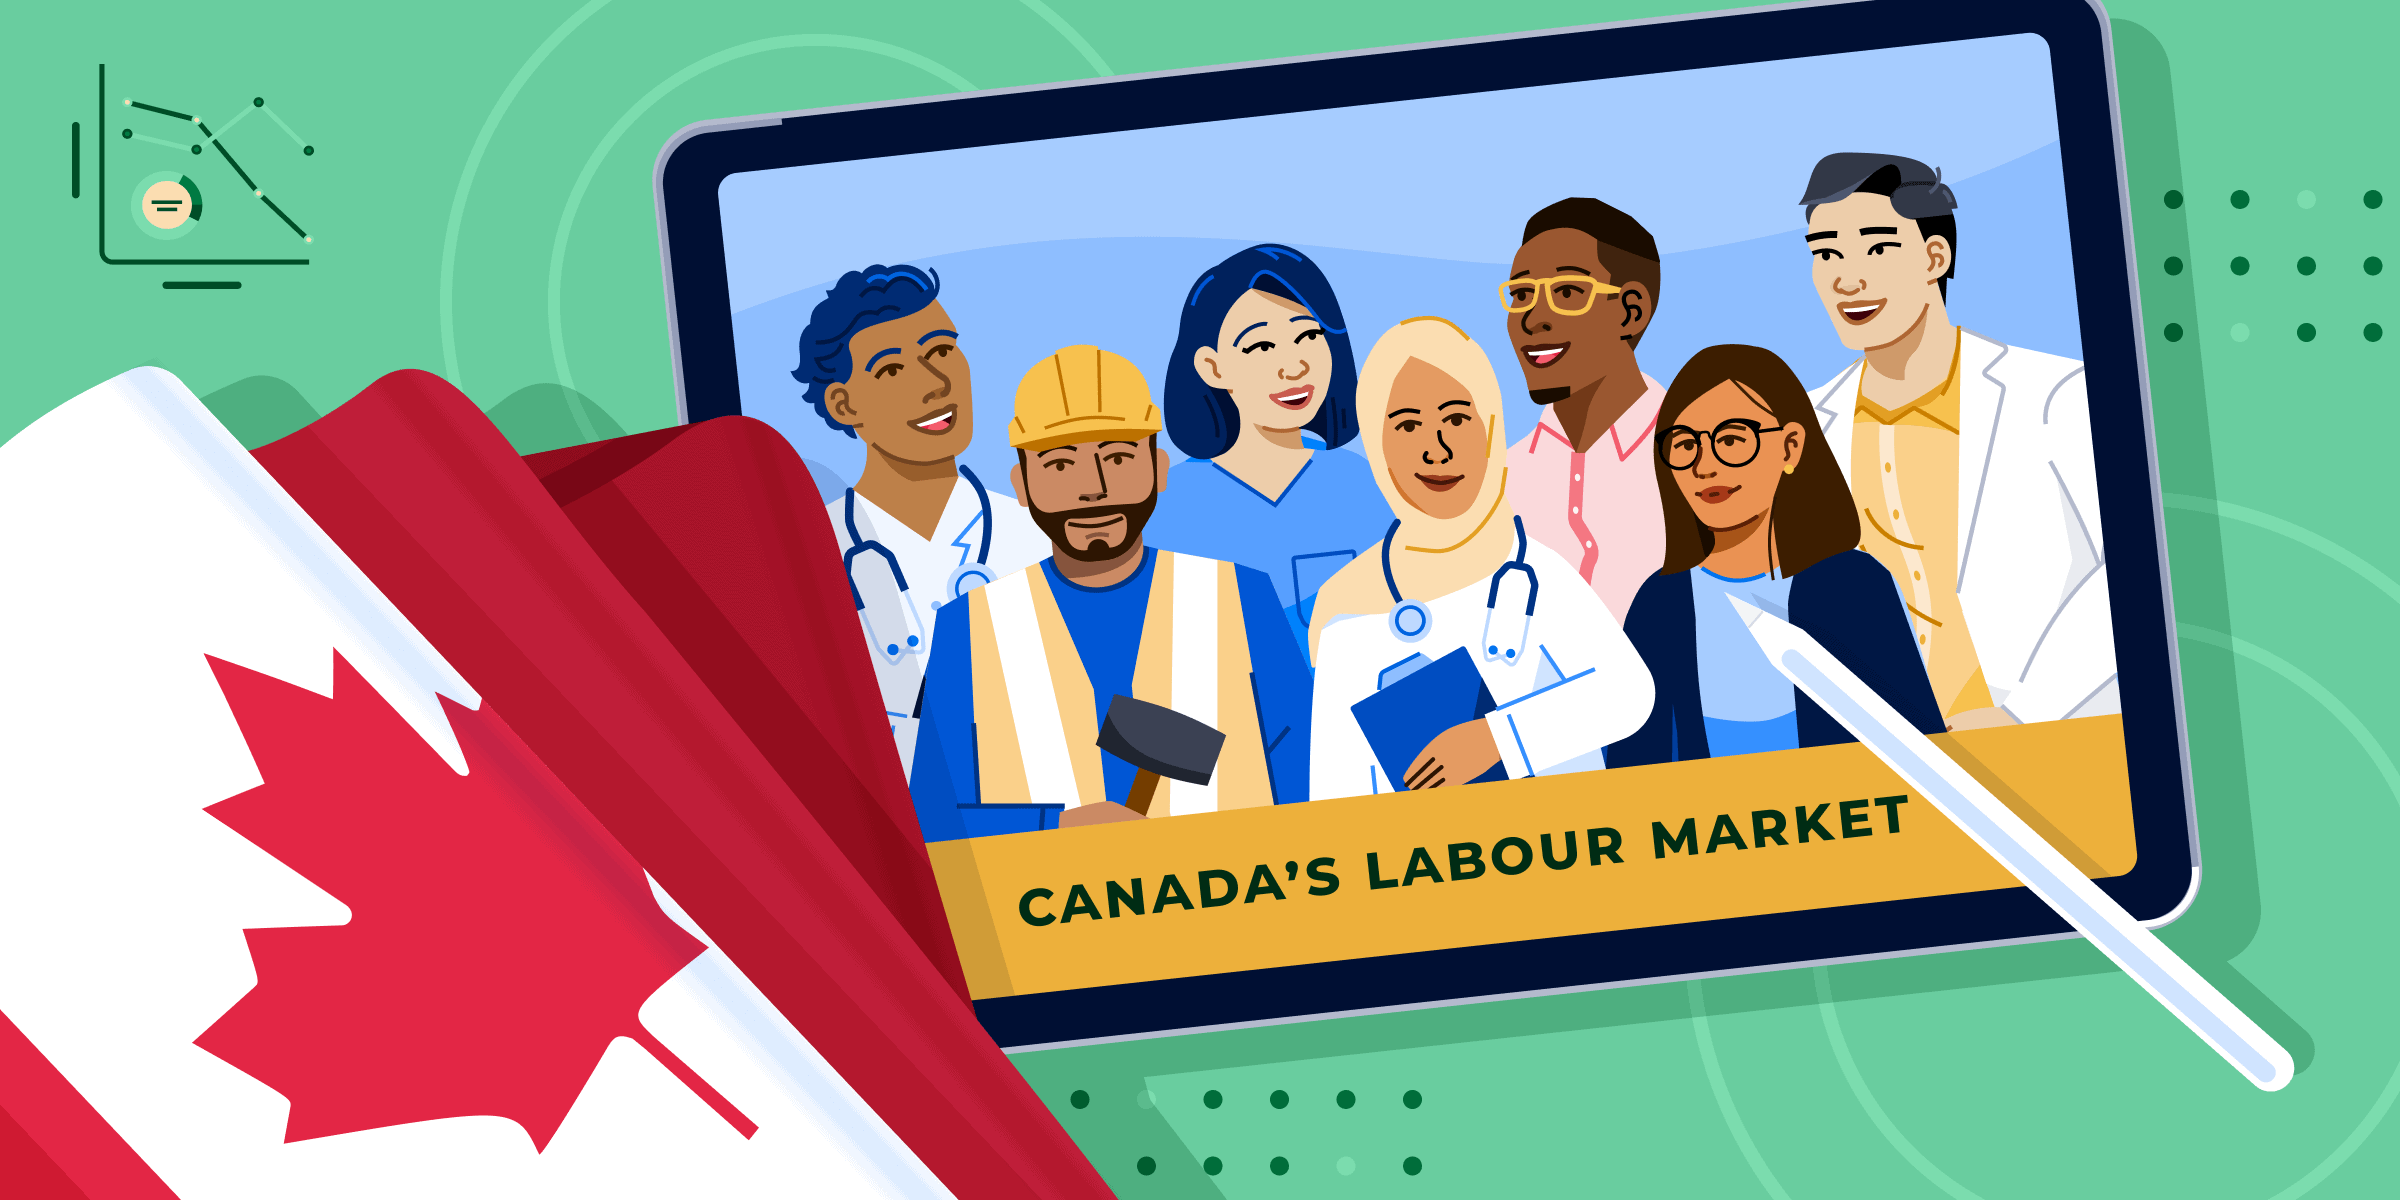 AI Healthcare and Skilled Trades banner featuring Canada flag and image of multiple employees on a tablet